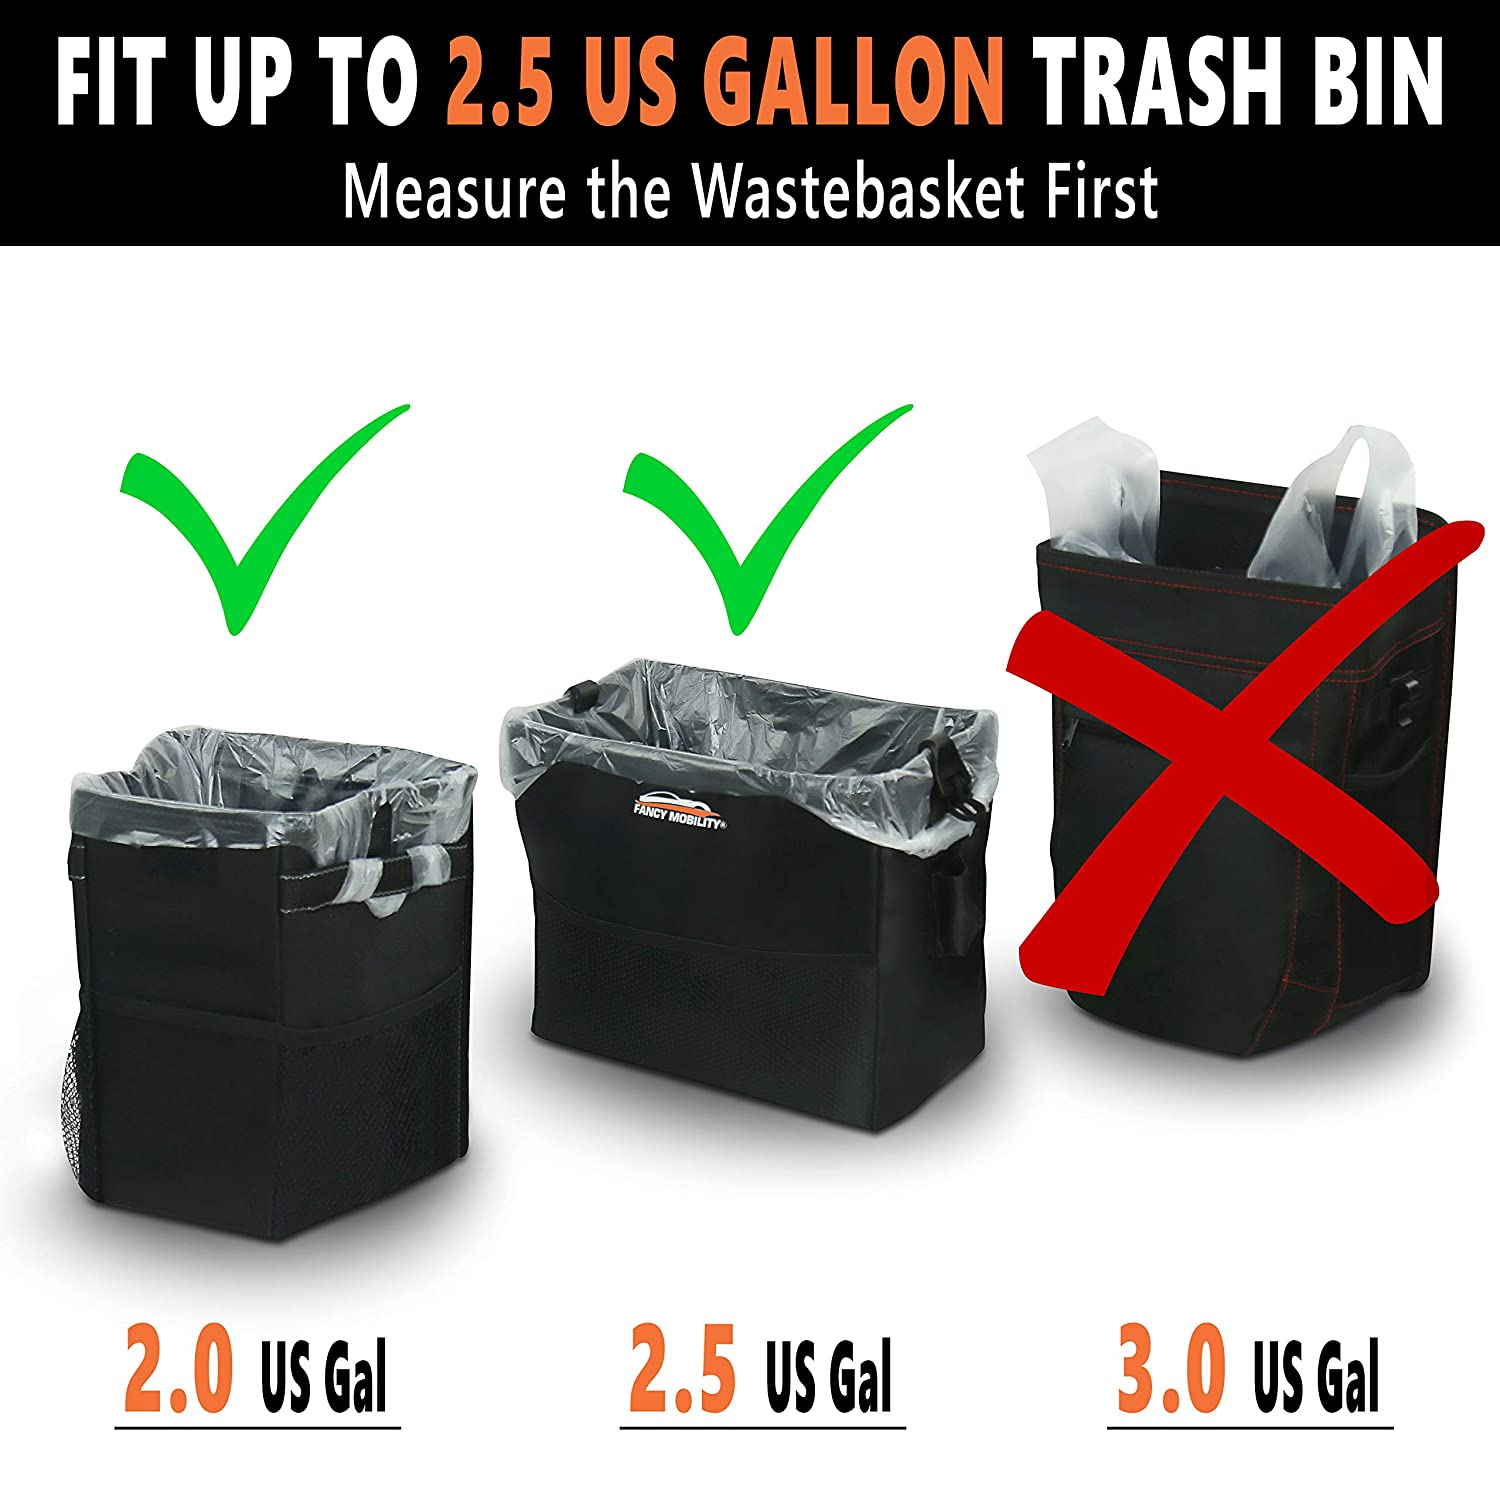 1 Pack Great for Office Fancy Mobility 2.5 Gallon Small Car Trash Can Liners Bathroom Car Accessories Small Waste Basket Trash Bin Liners 25 Strong Plastic Bags for Car Garbage Bedroom